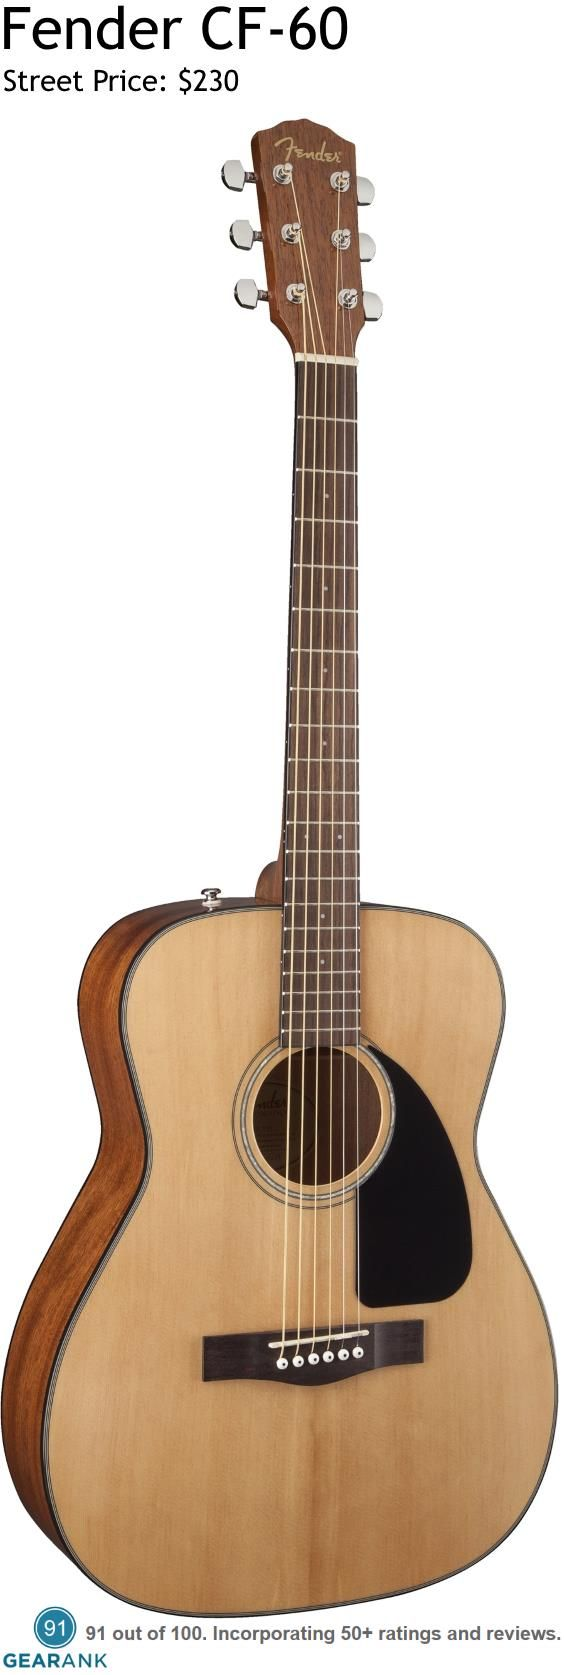 """Fender CF-60. This folk-sized guitar has a spruce top with scalloped """"X""""-bracing and mahogany back and sides. It's one of the highest rated acoustic guitars under $300."""